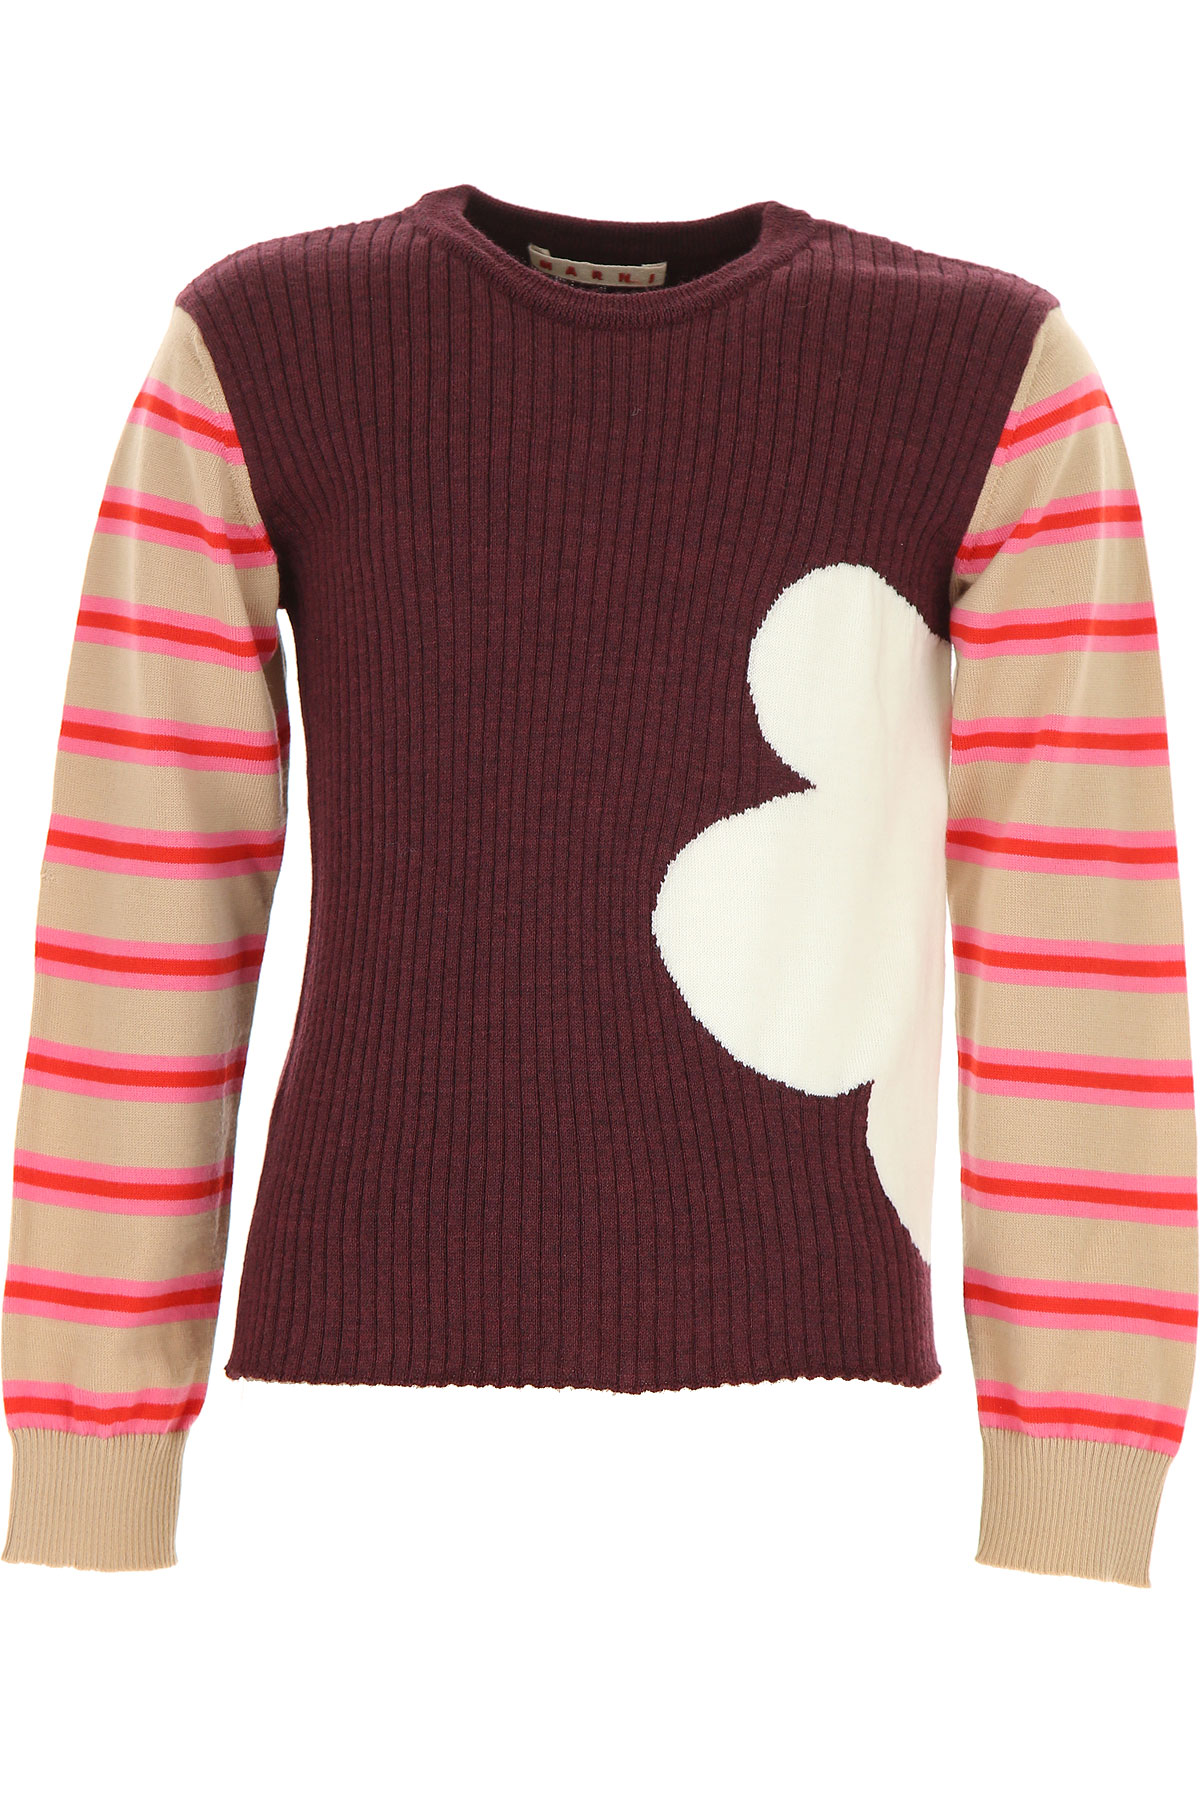 Image of Marni Kids Sweaters for Girls, Bordeaux, Wool, 2017, 10Y 14Y 8Y